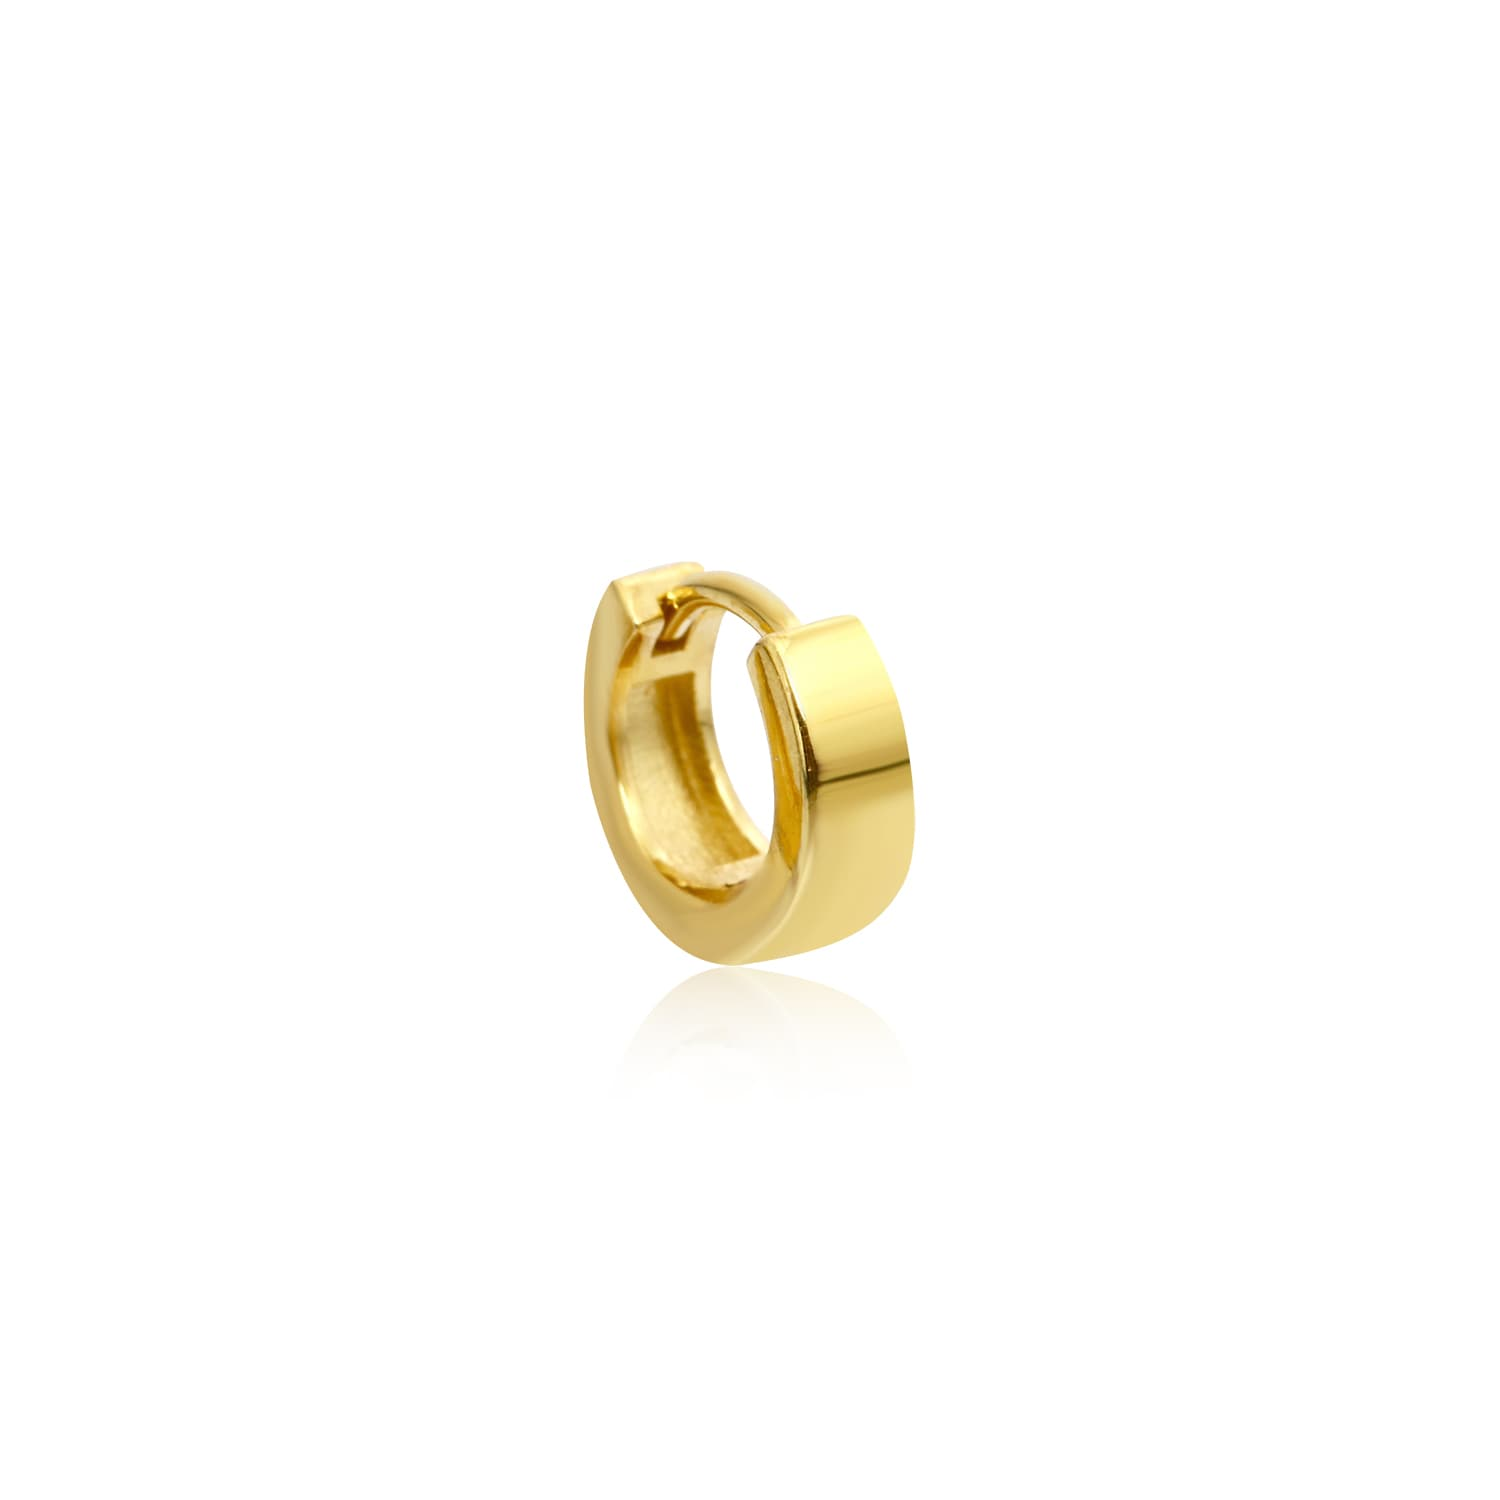 24 carat gold plated silver hoop earrings without stone